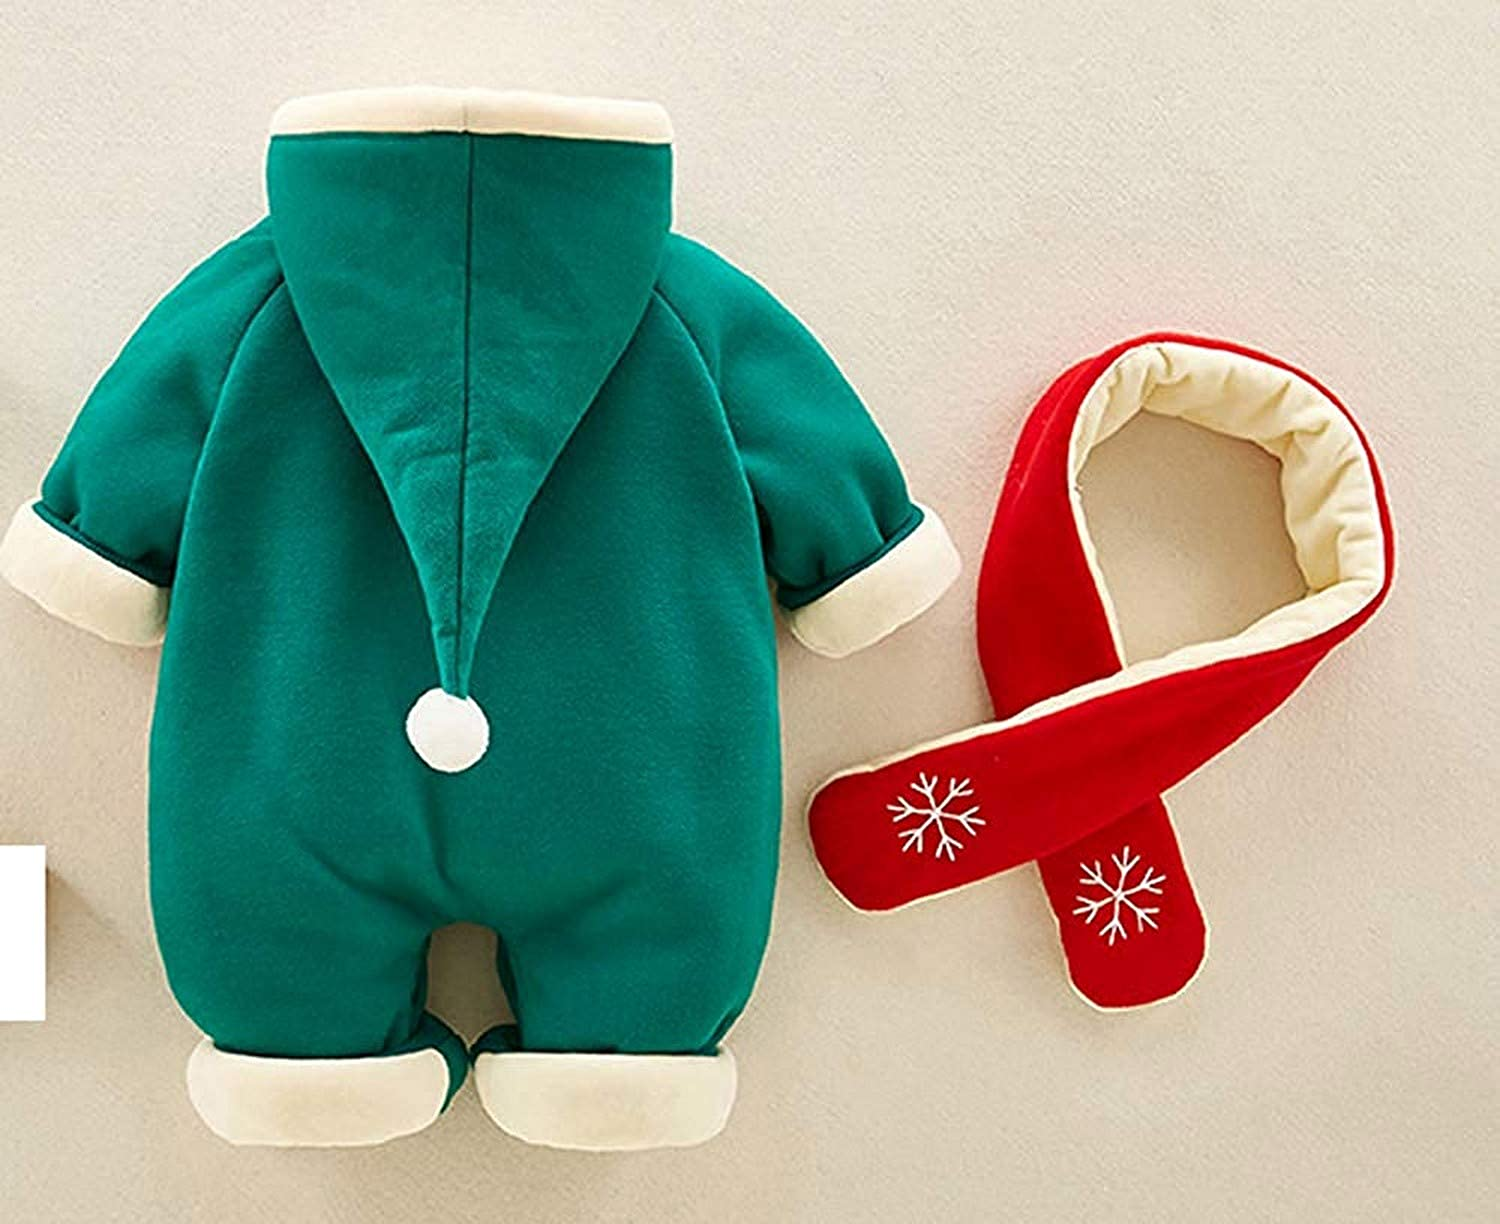 Carlos Foushee Infant Baby Boy Girl Winter Christmas Thick Outwear Romper Warm Fleece Jumpsuit